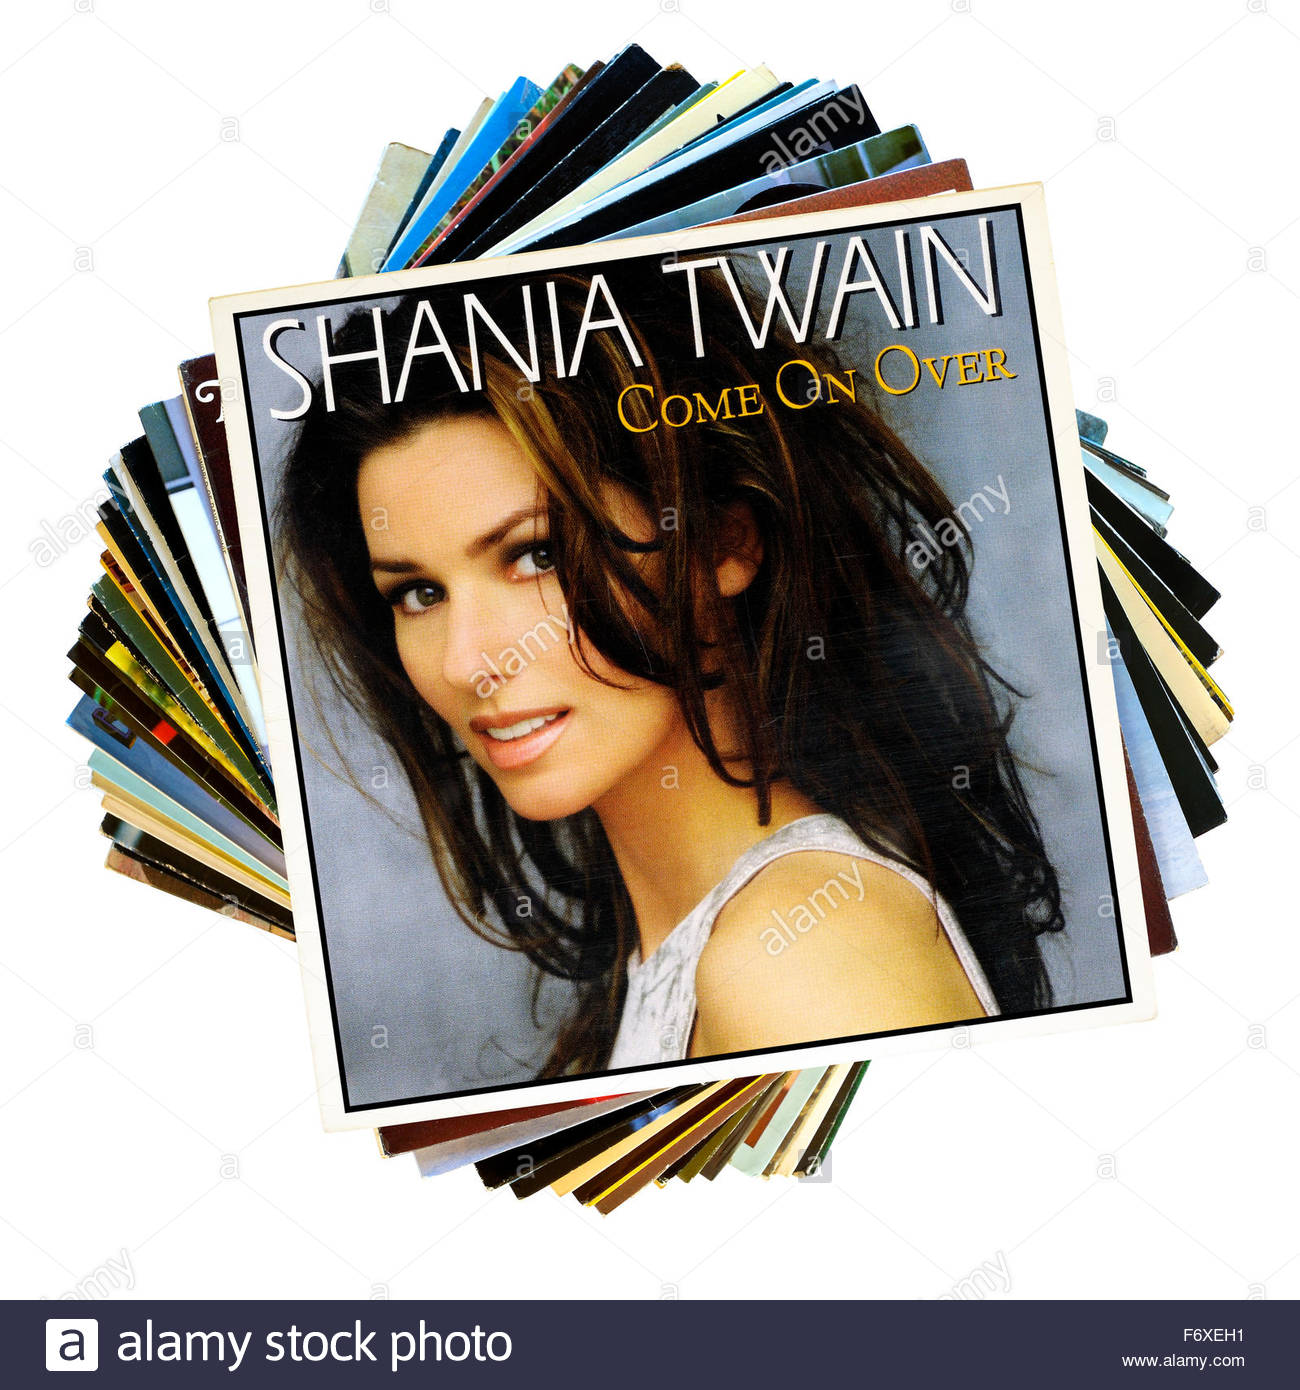 Shania Twain 1997 Album Come On Over Stack Of Lp Records